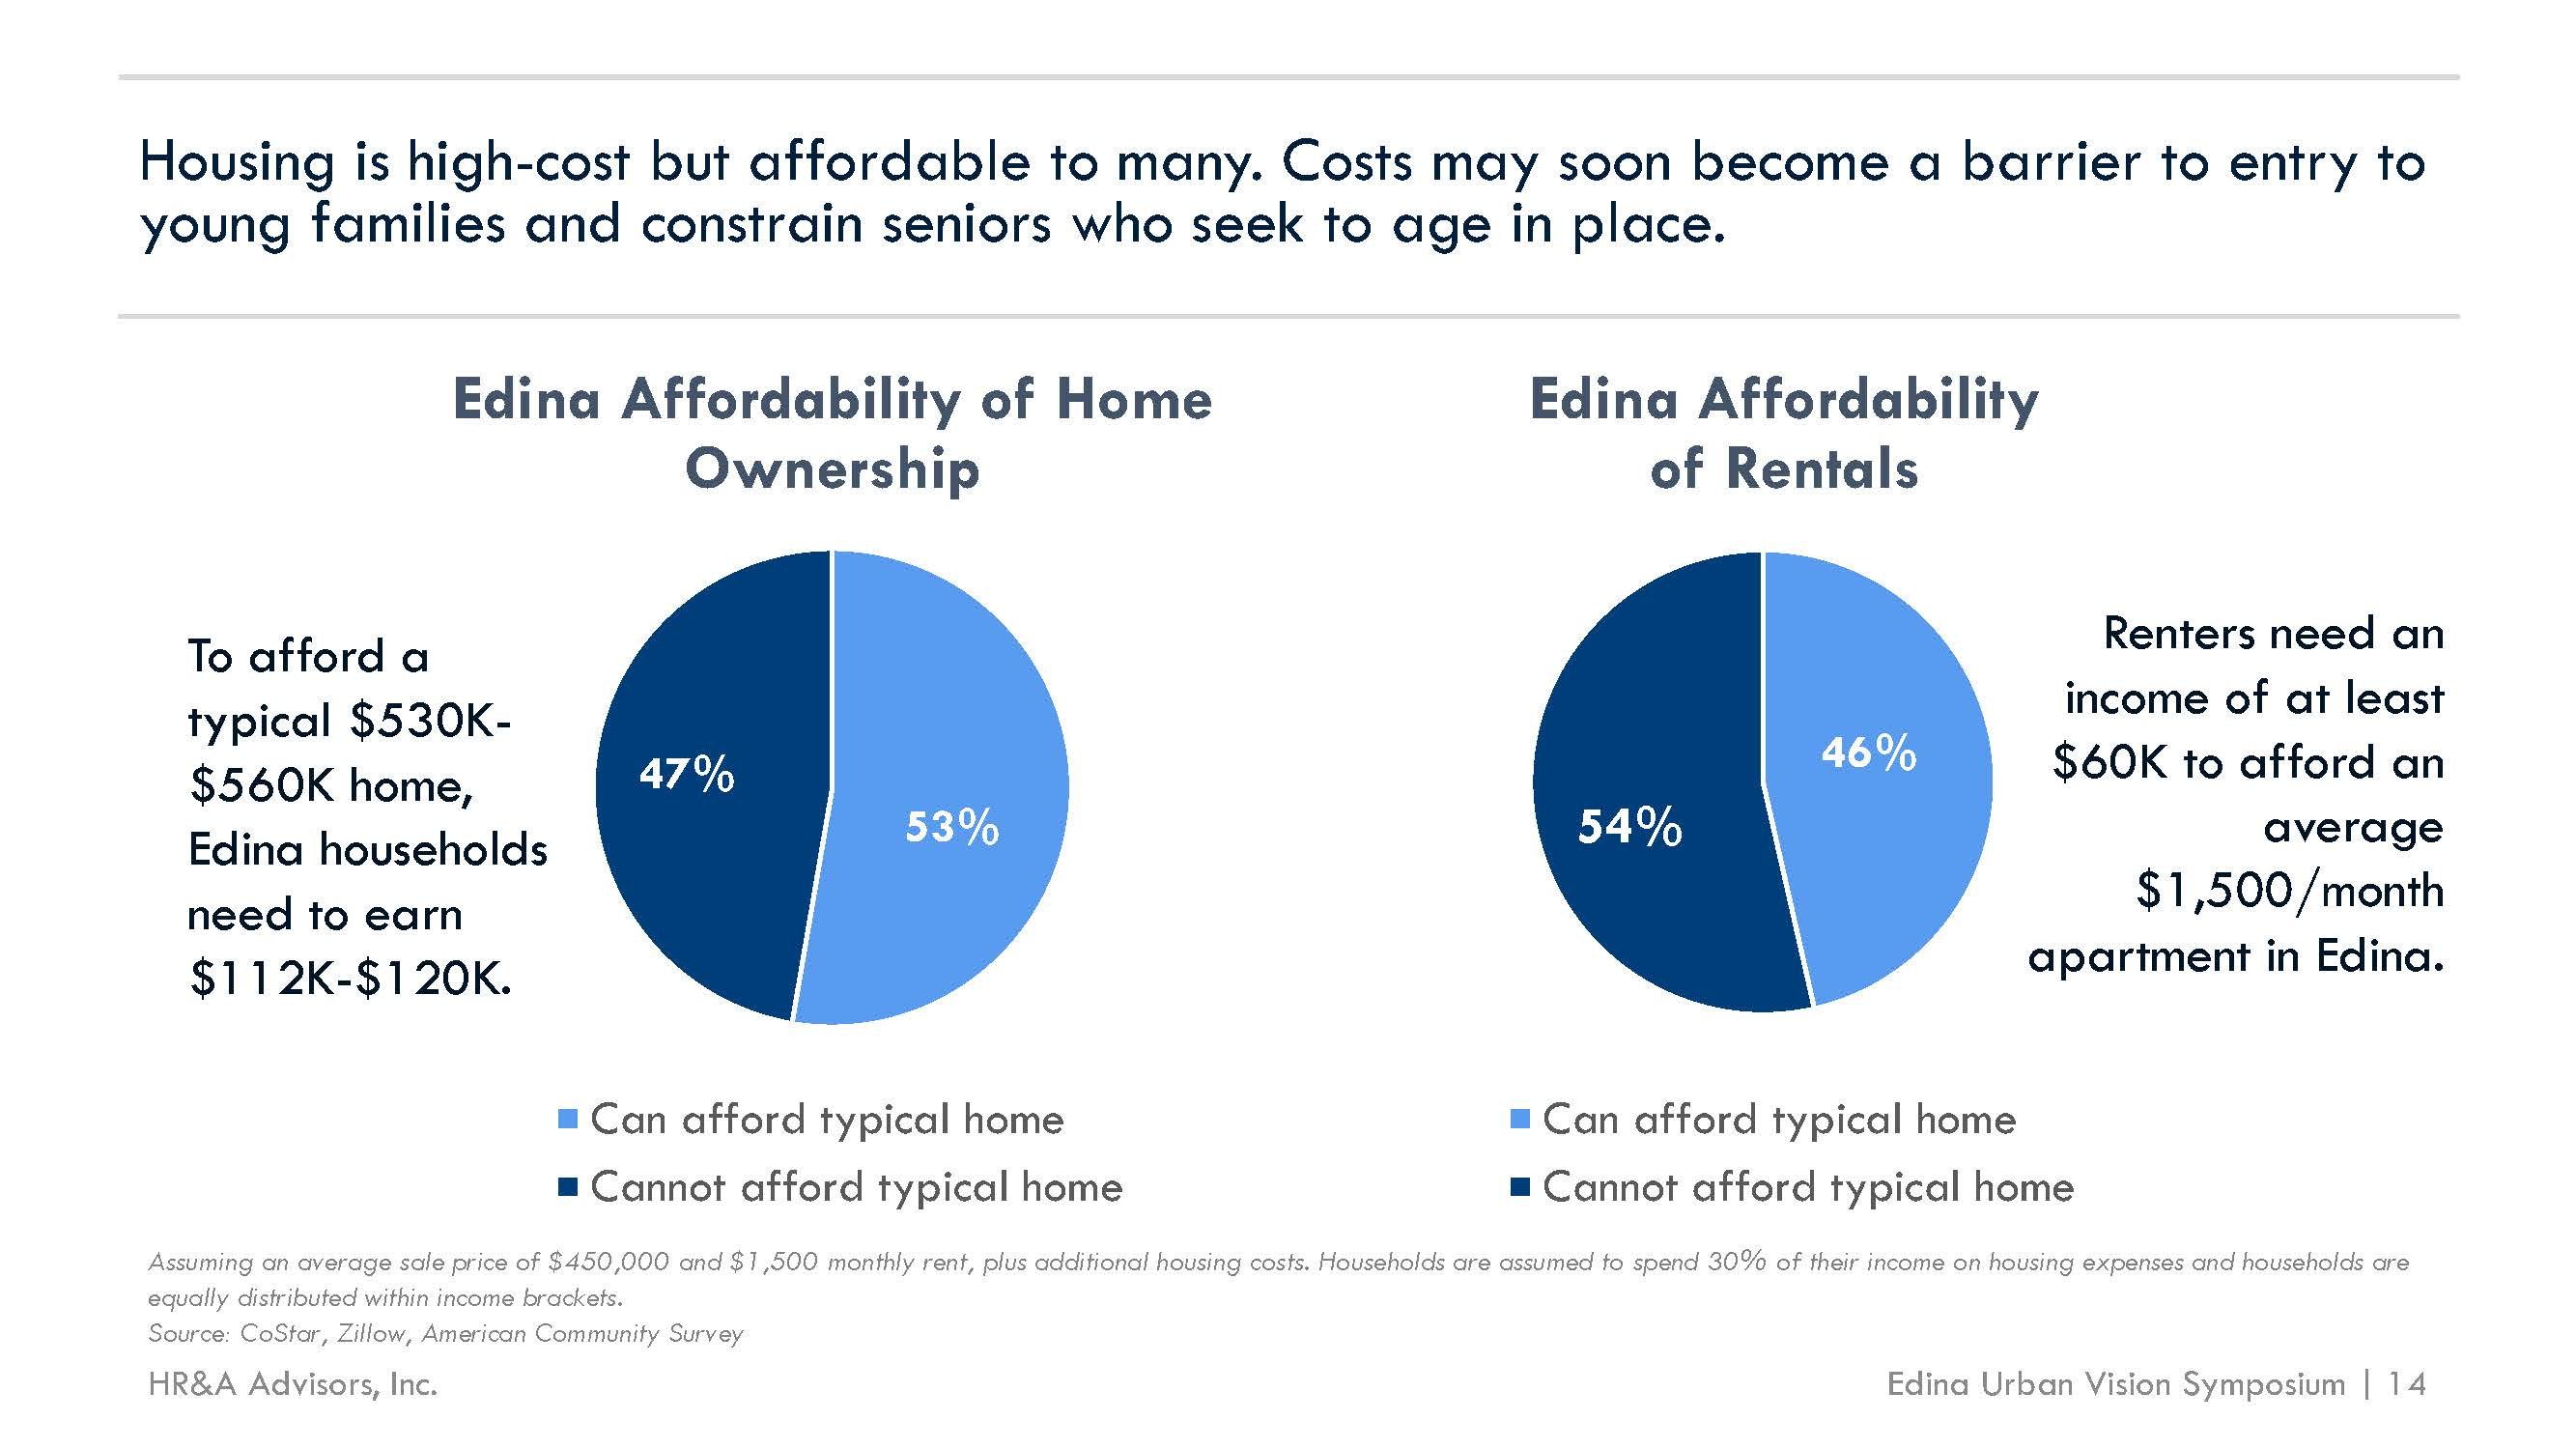 Housing Cost Barriers